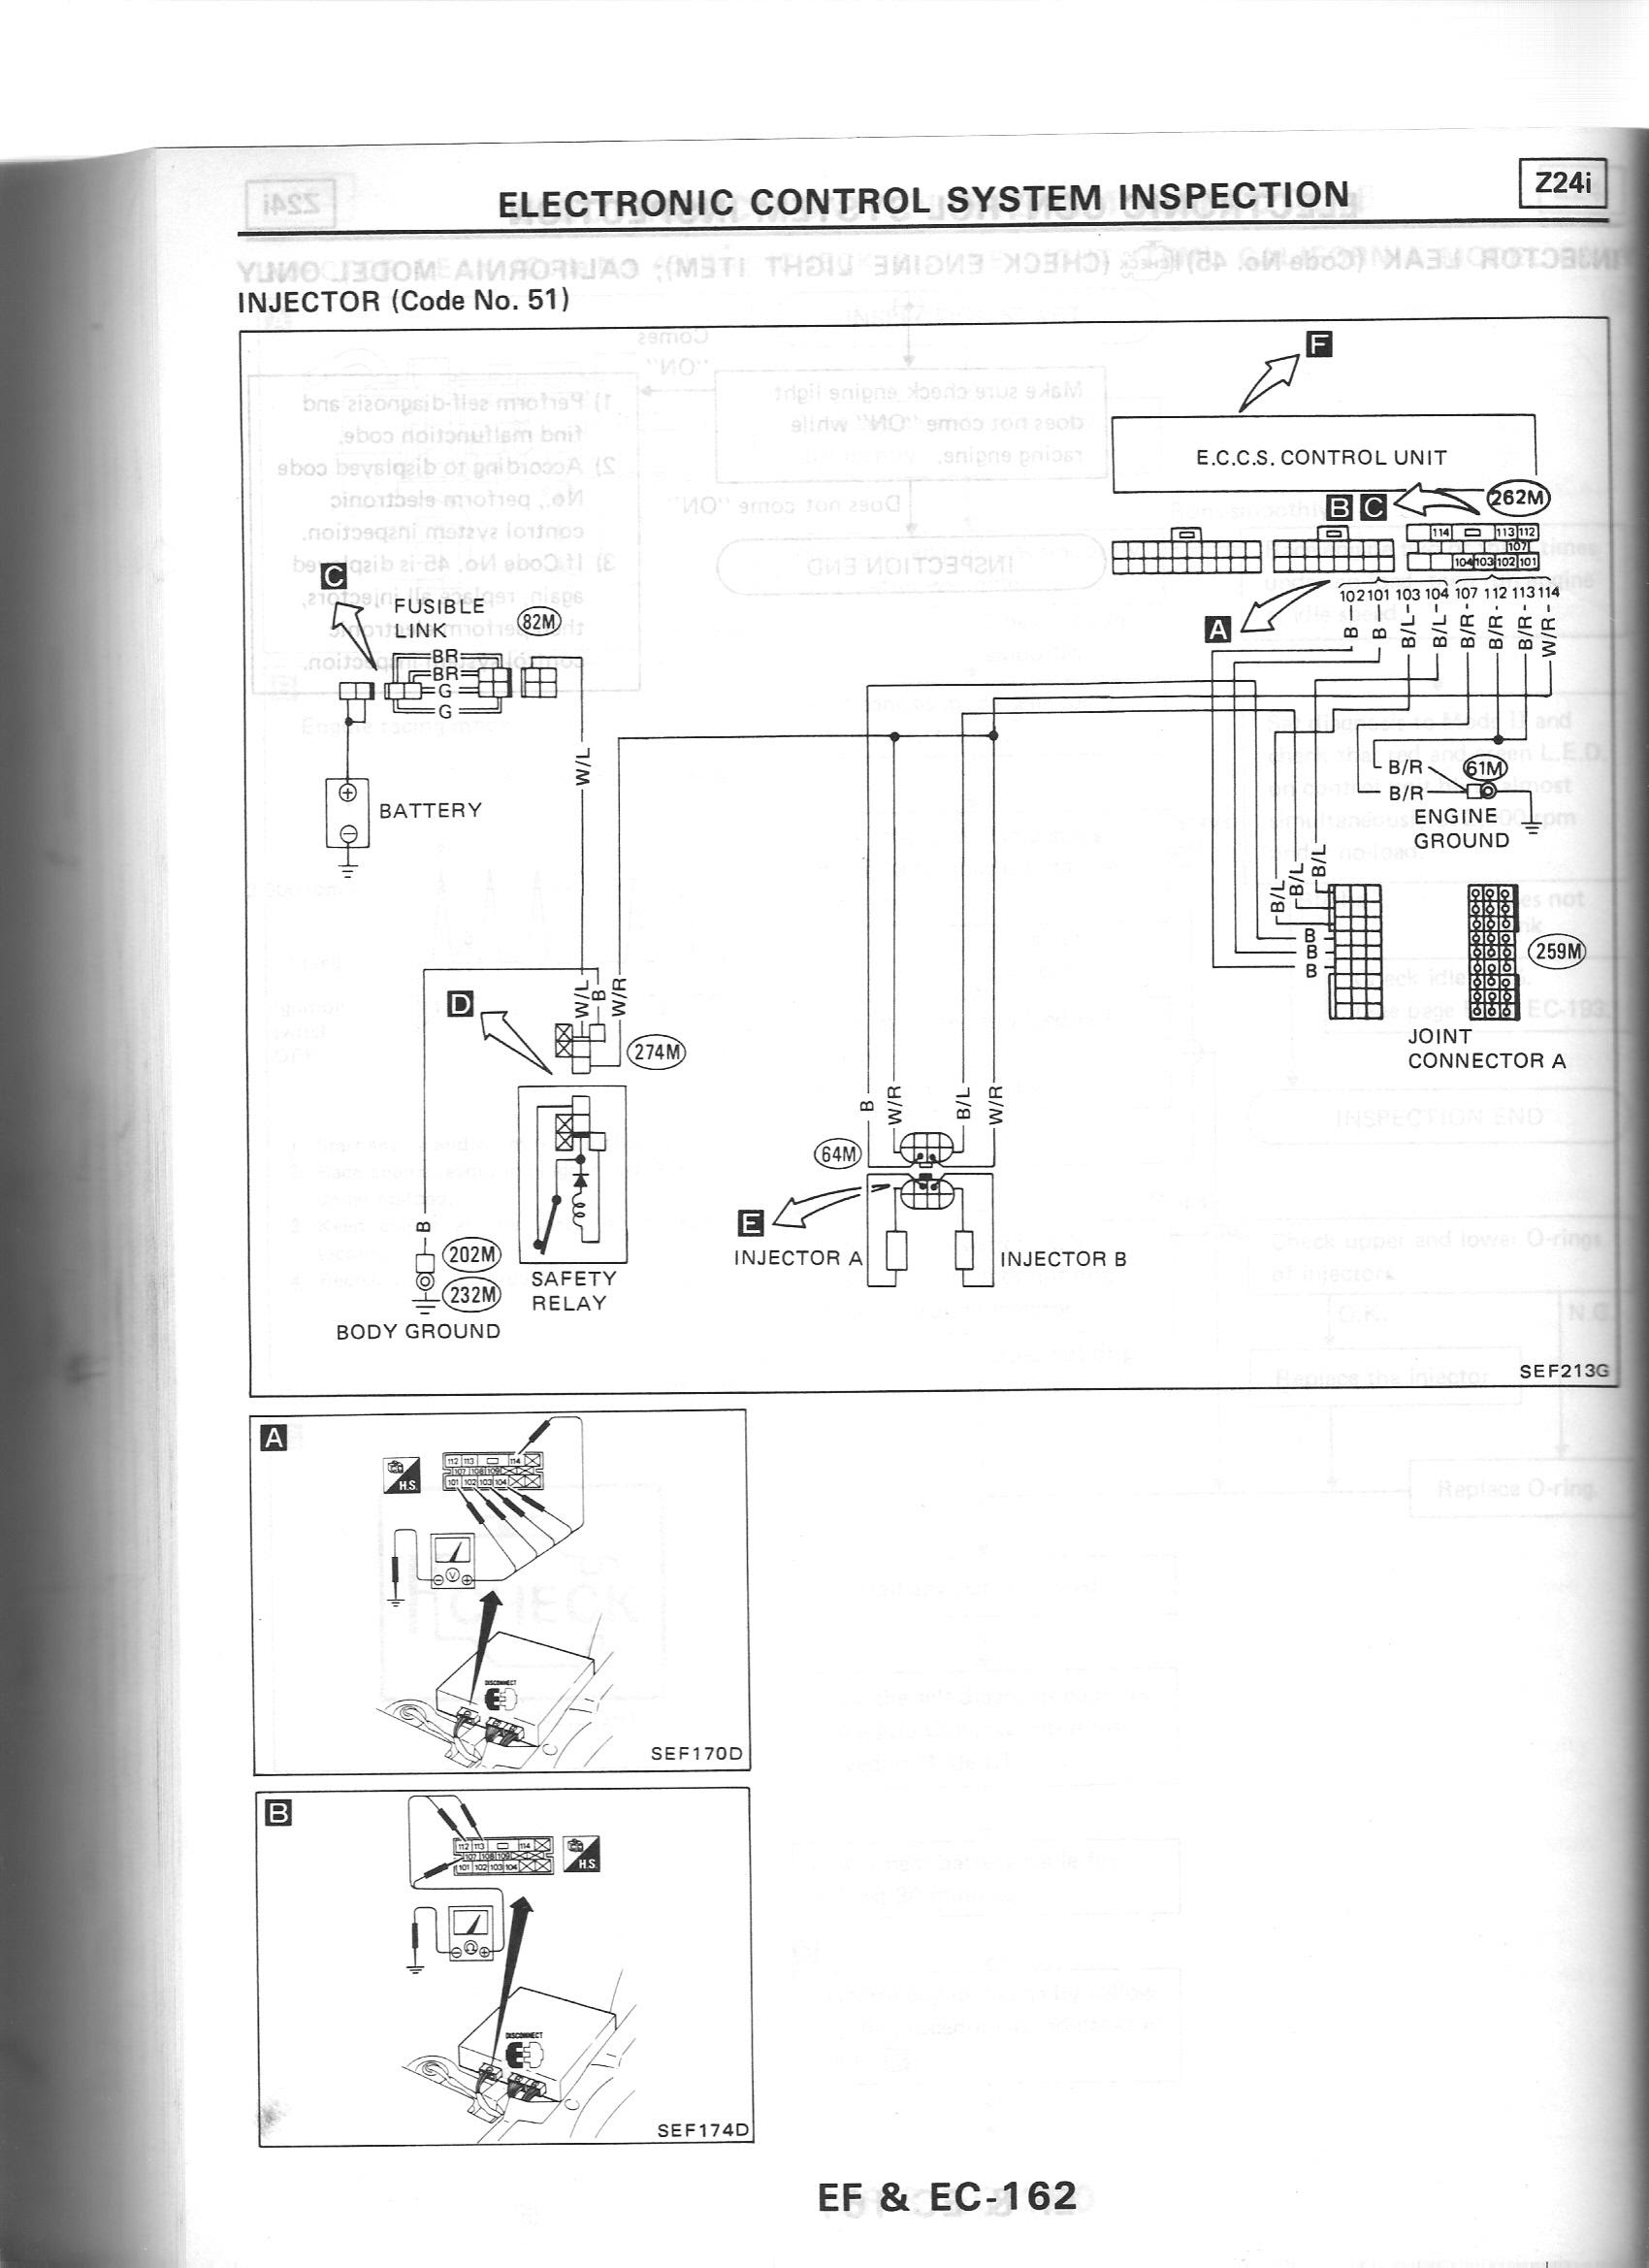 Nissan Hardbody Distributor Wiring Diagram